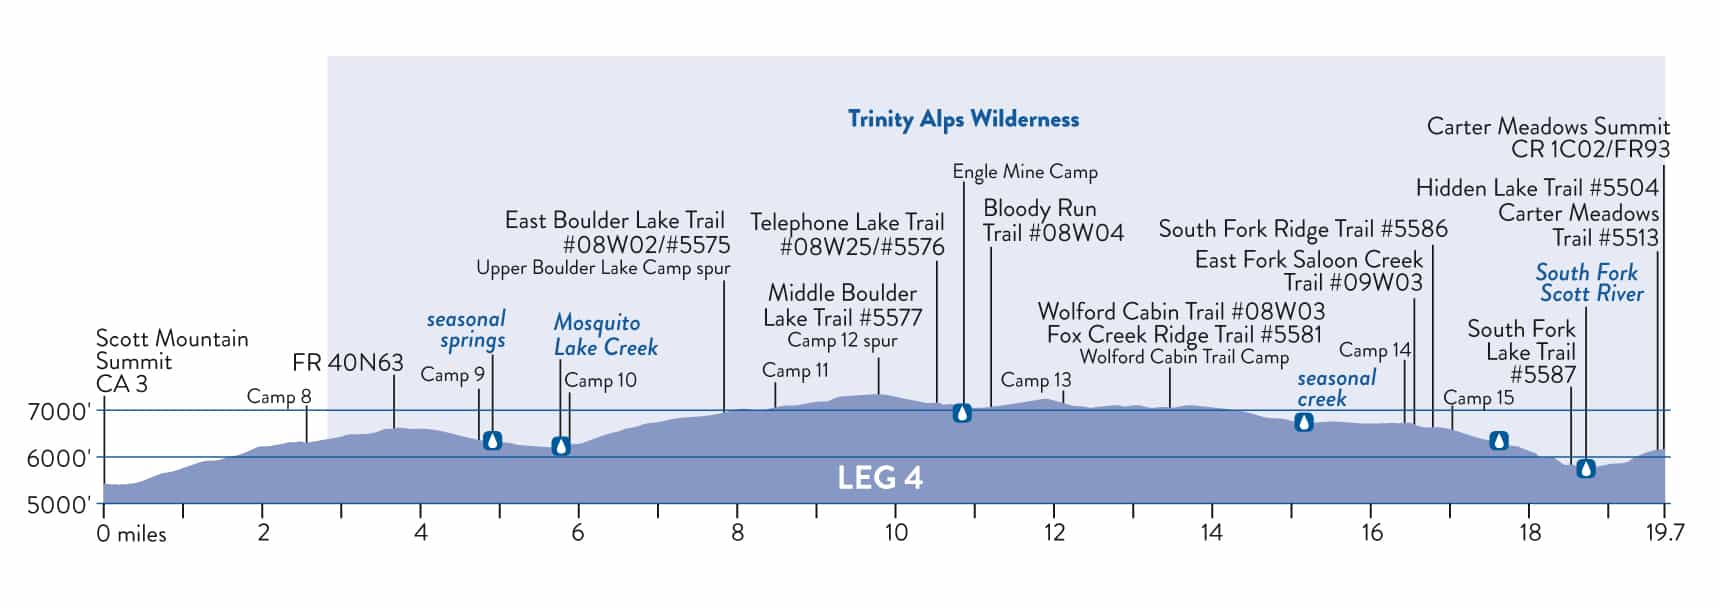 Trinity Alps Pacific Crest Trail Section Hiking: Complete